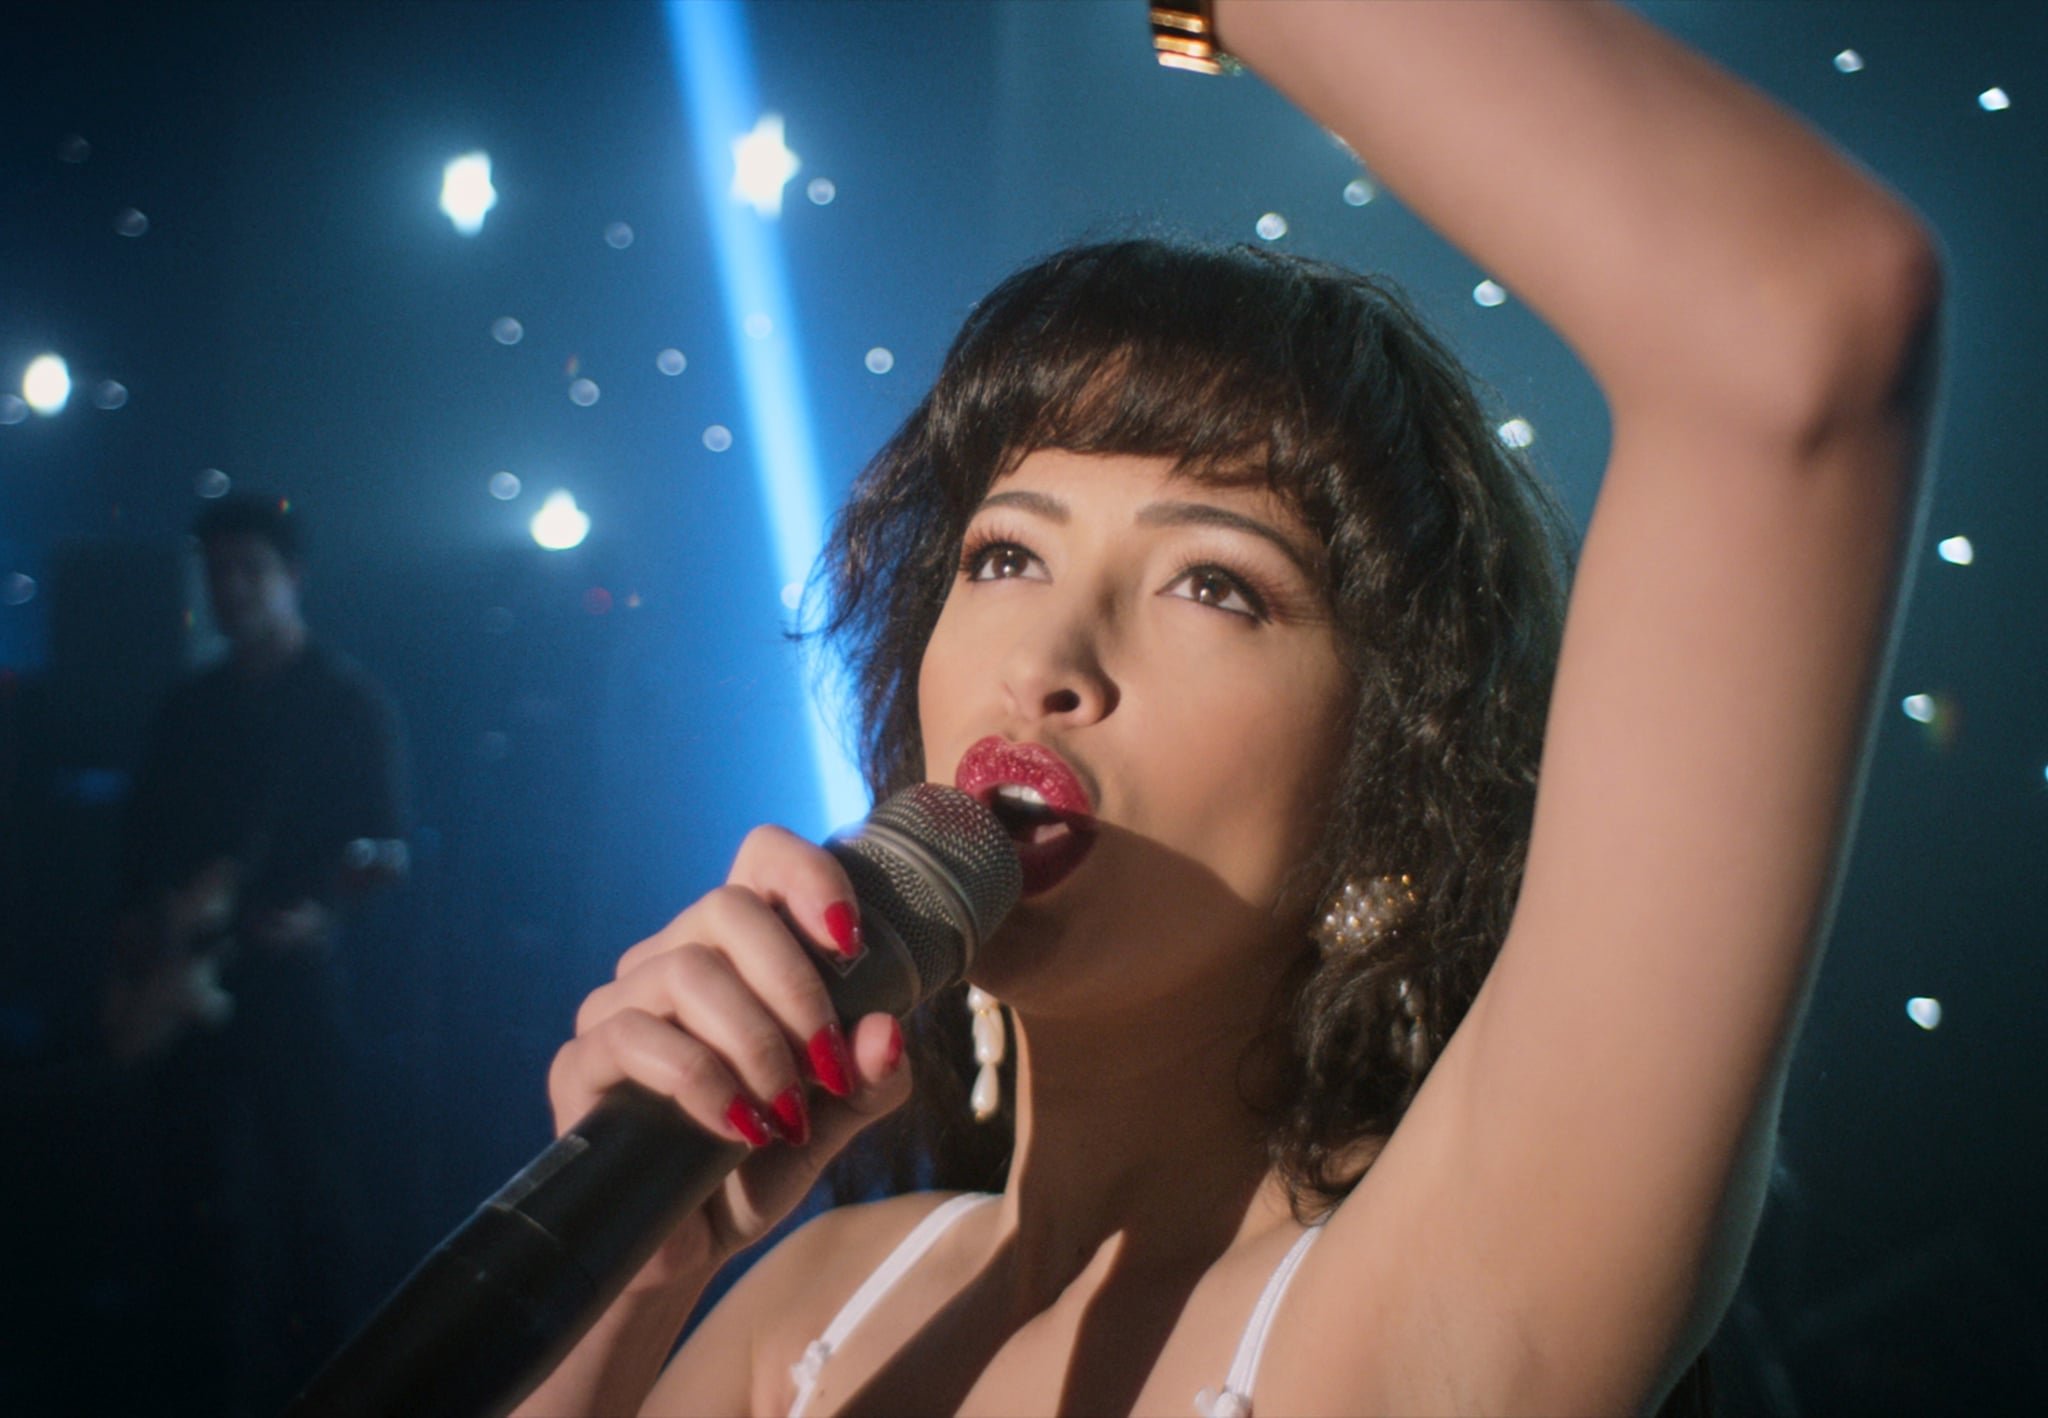 SELENA THE SERIES (L to R) CHRISTIAN SERRATOS as SELENA QUINTANILLA in Trailer of SELENA THE SERIES Cr. NETFLIX © 2020